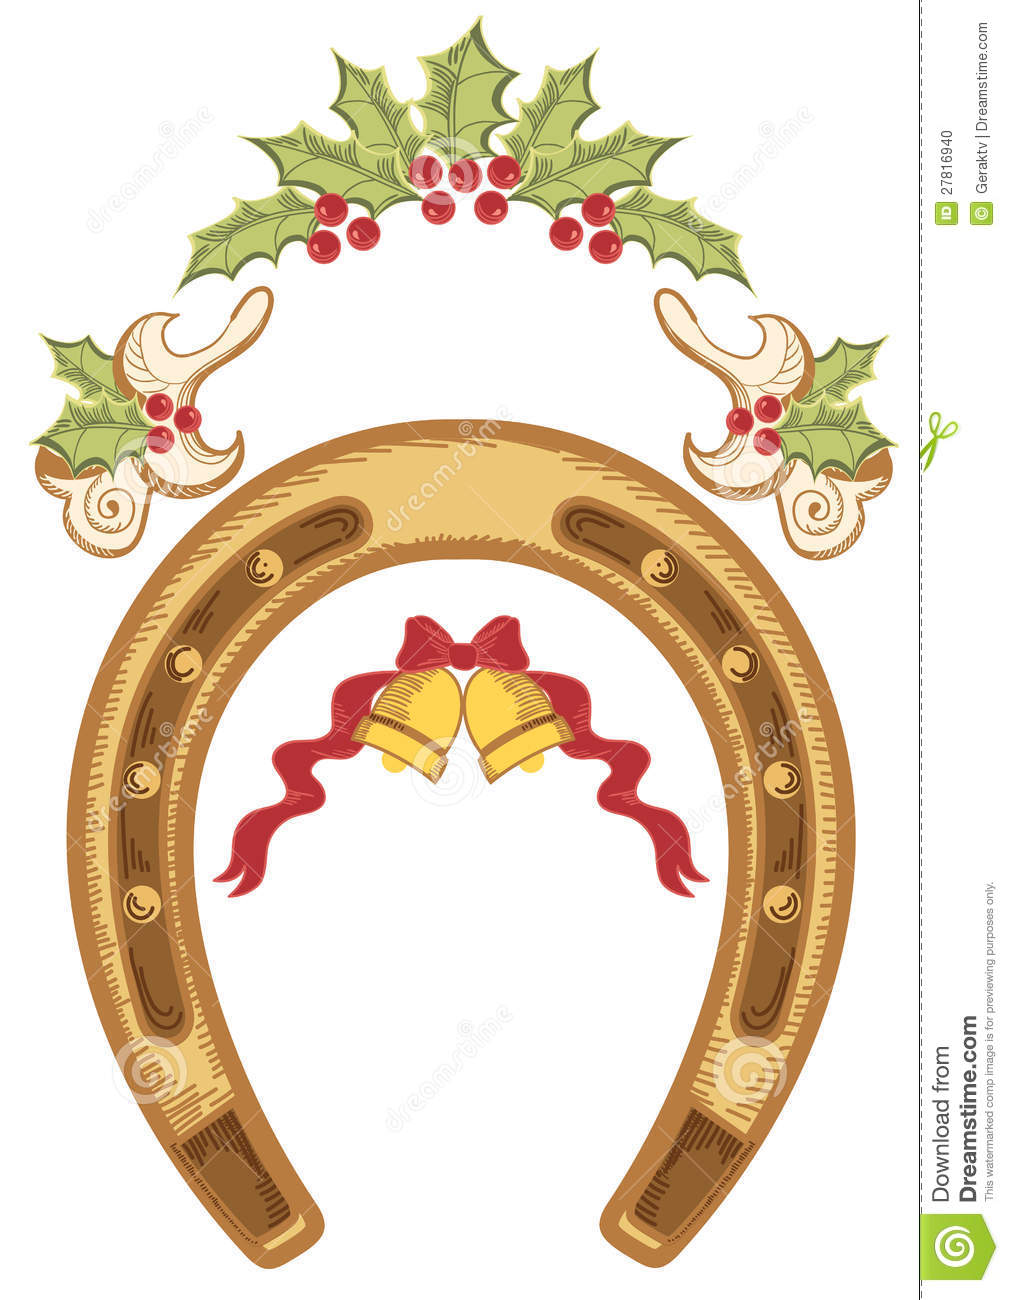 christmas horseshoe with holly berry leaves stock vector holly berry clip art black and white holly berry clip art free border